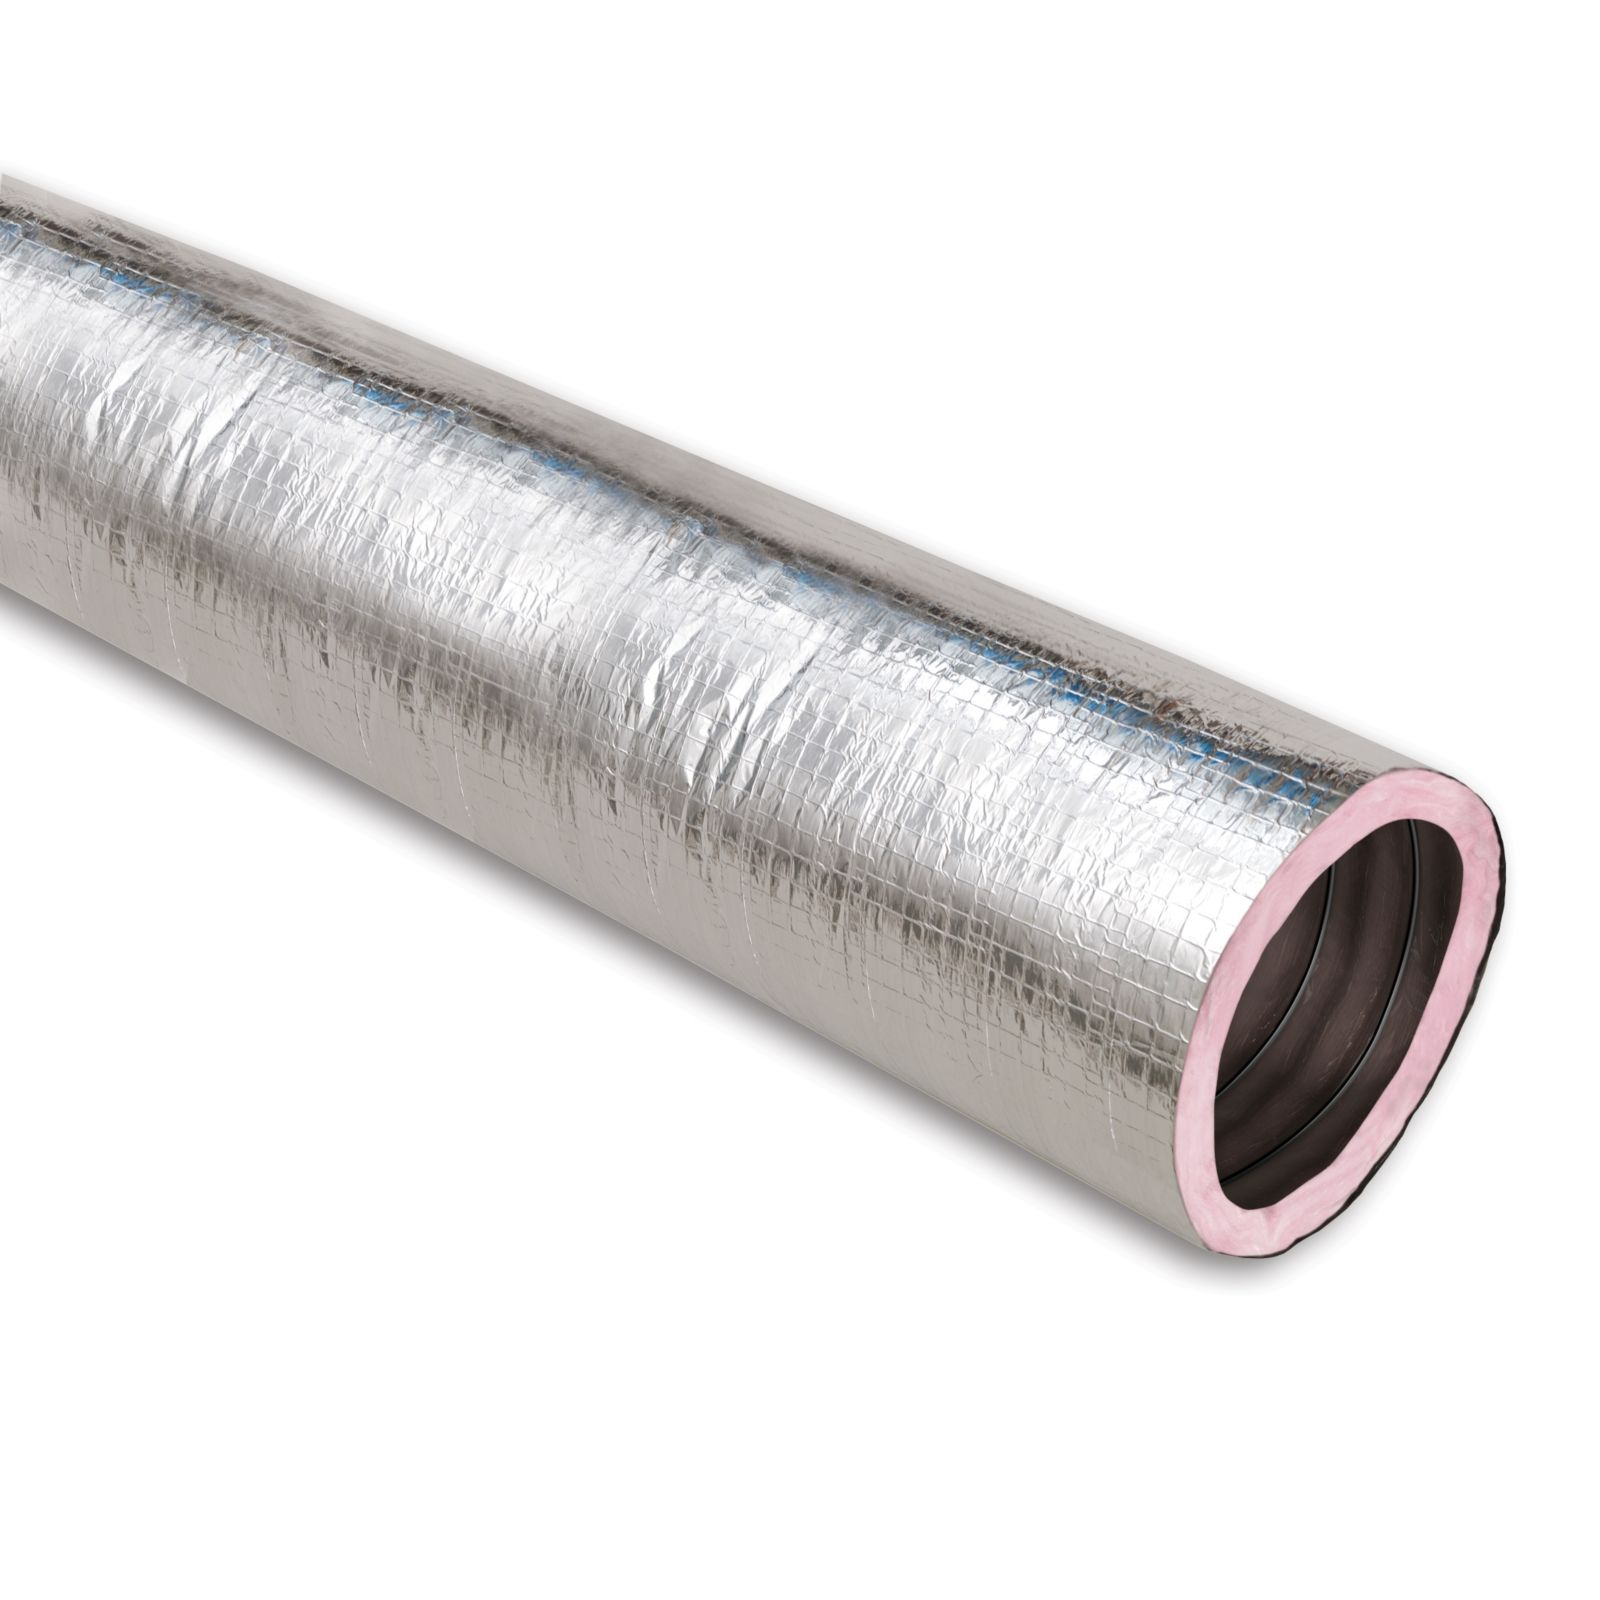 Thermaflex 053805000004 - KM Silver Flex-Vent Insulated Flexible Air Duct, R6, 5'' X 50' Box